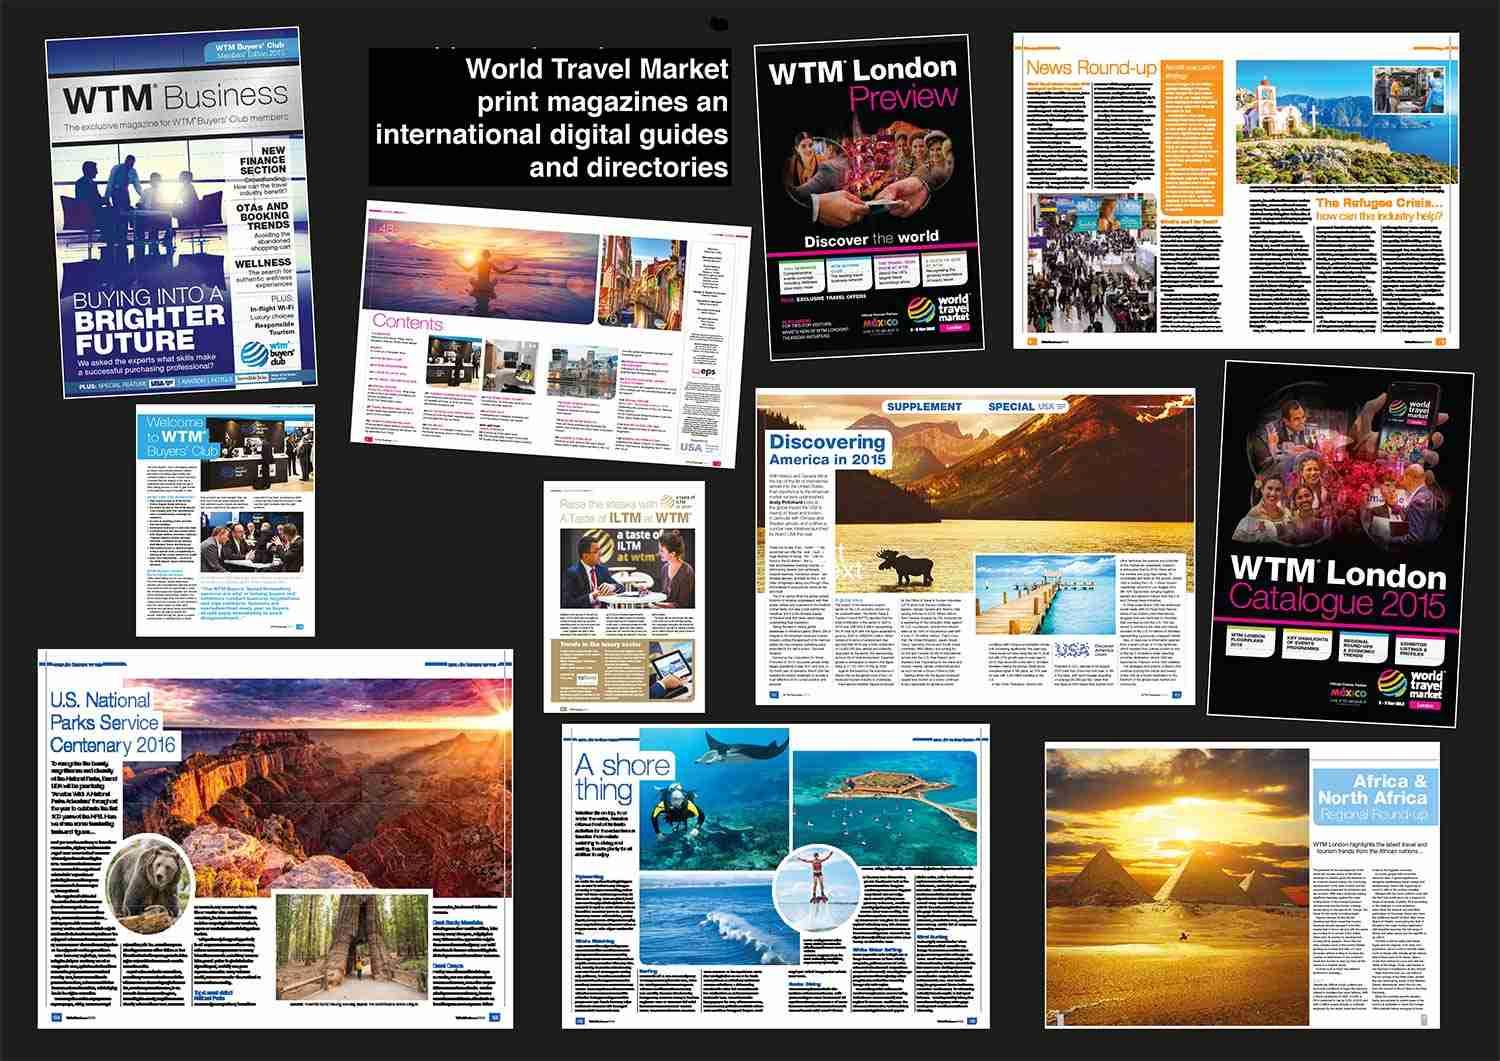 Andy Pritchard's publications in World Travel Market Magazines and international guides and directories